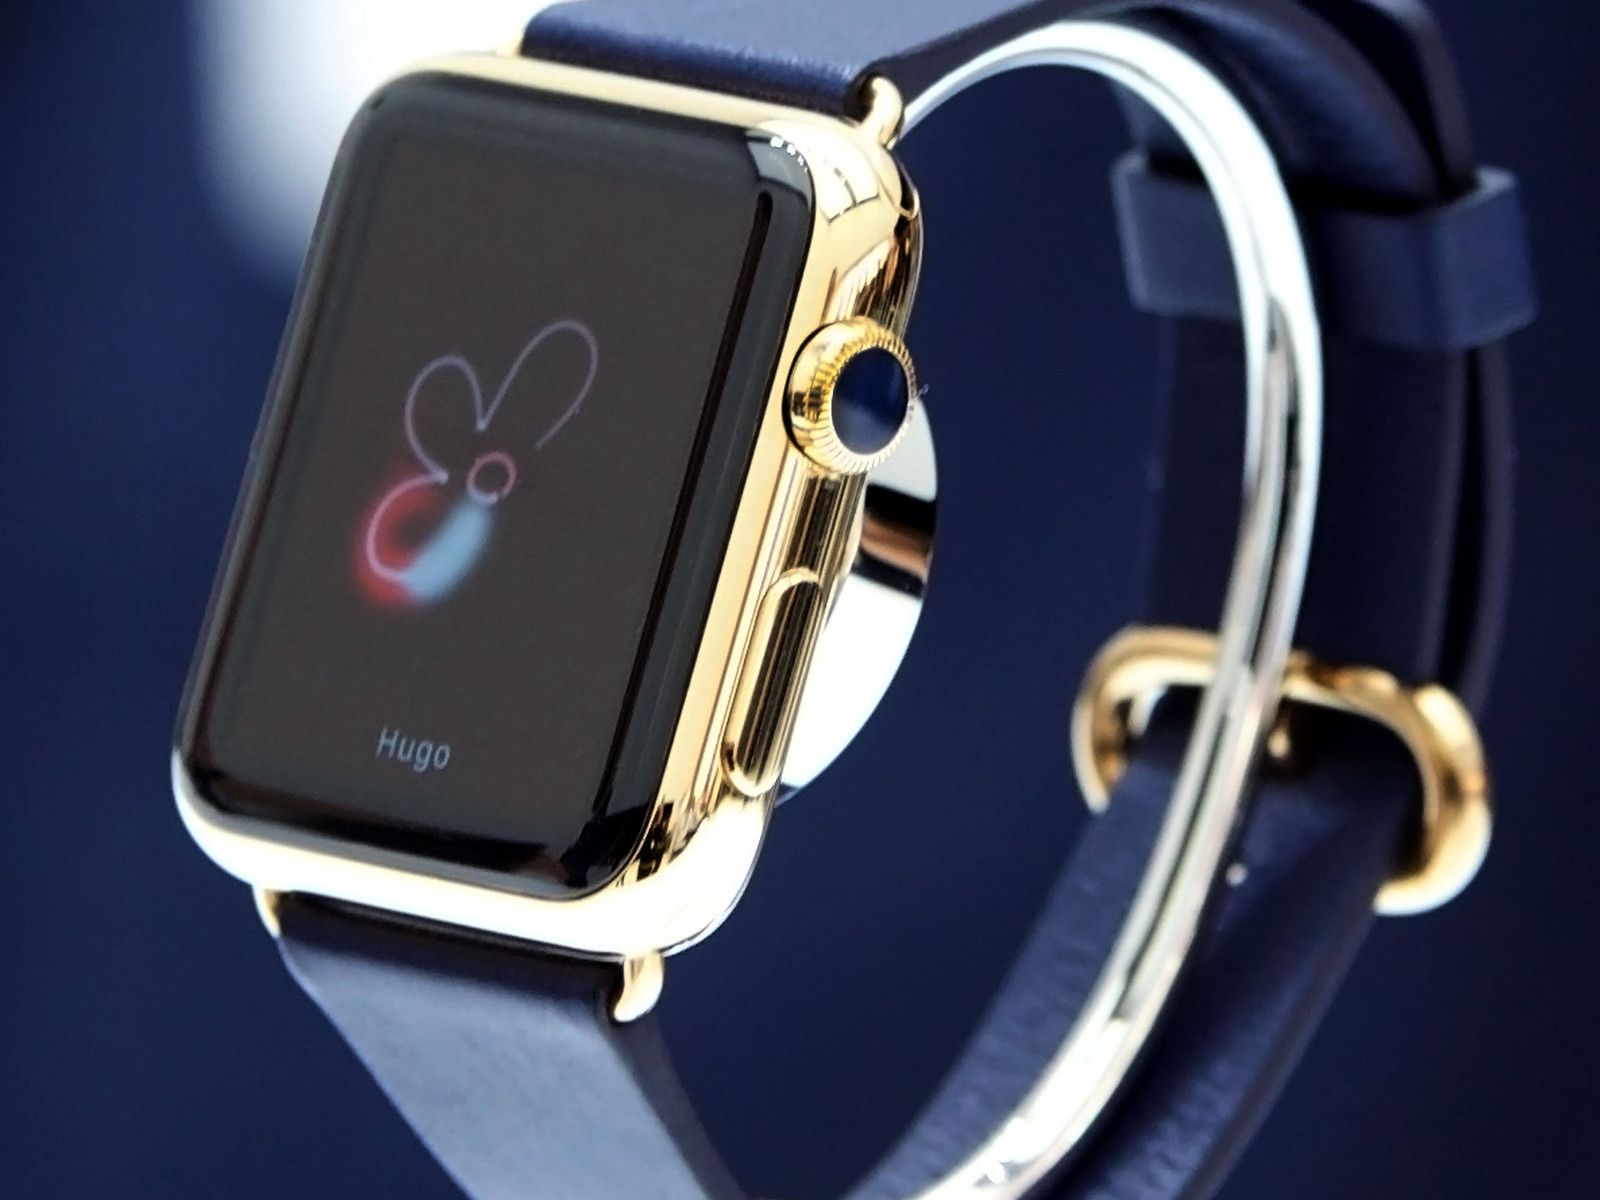 Apple Watch Edition at September 2014 event